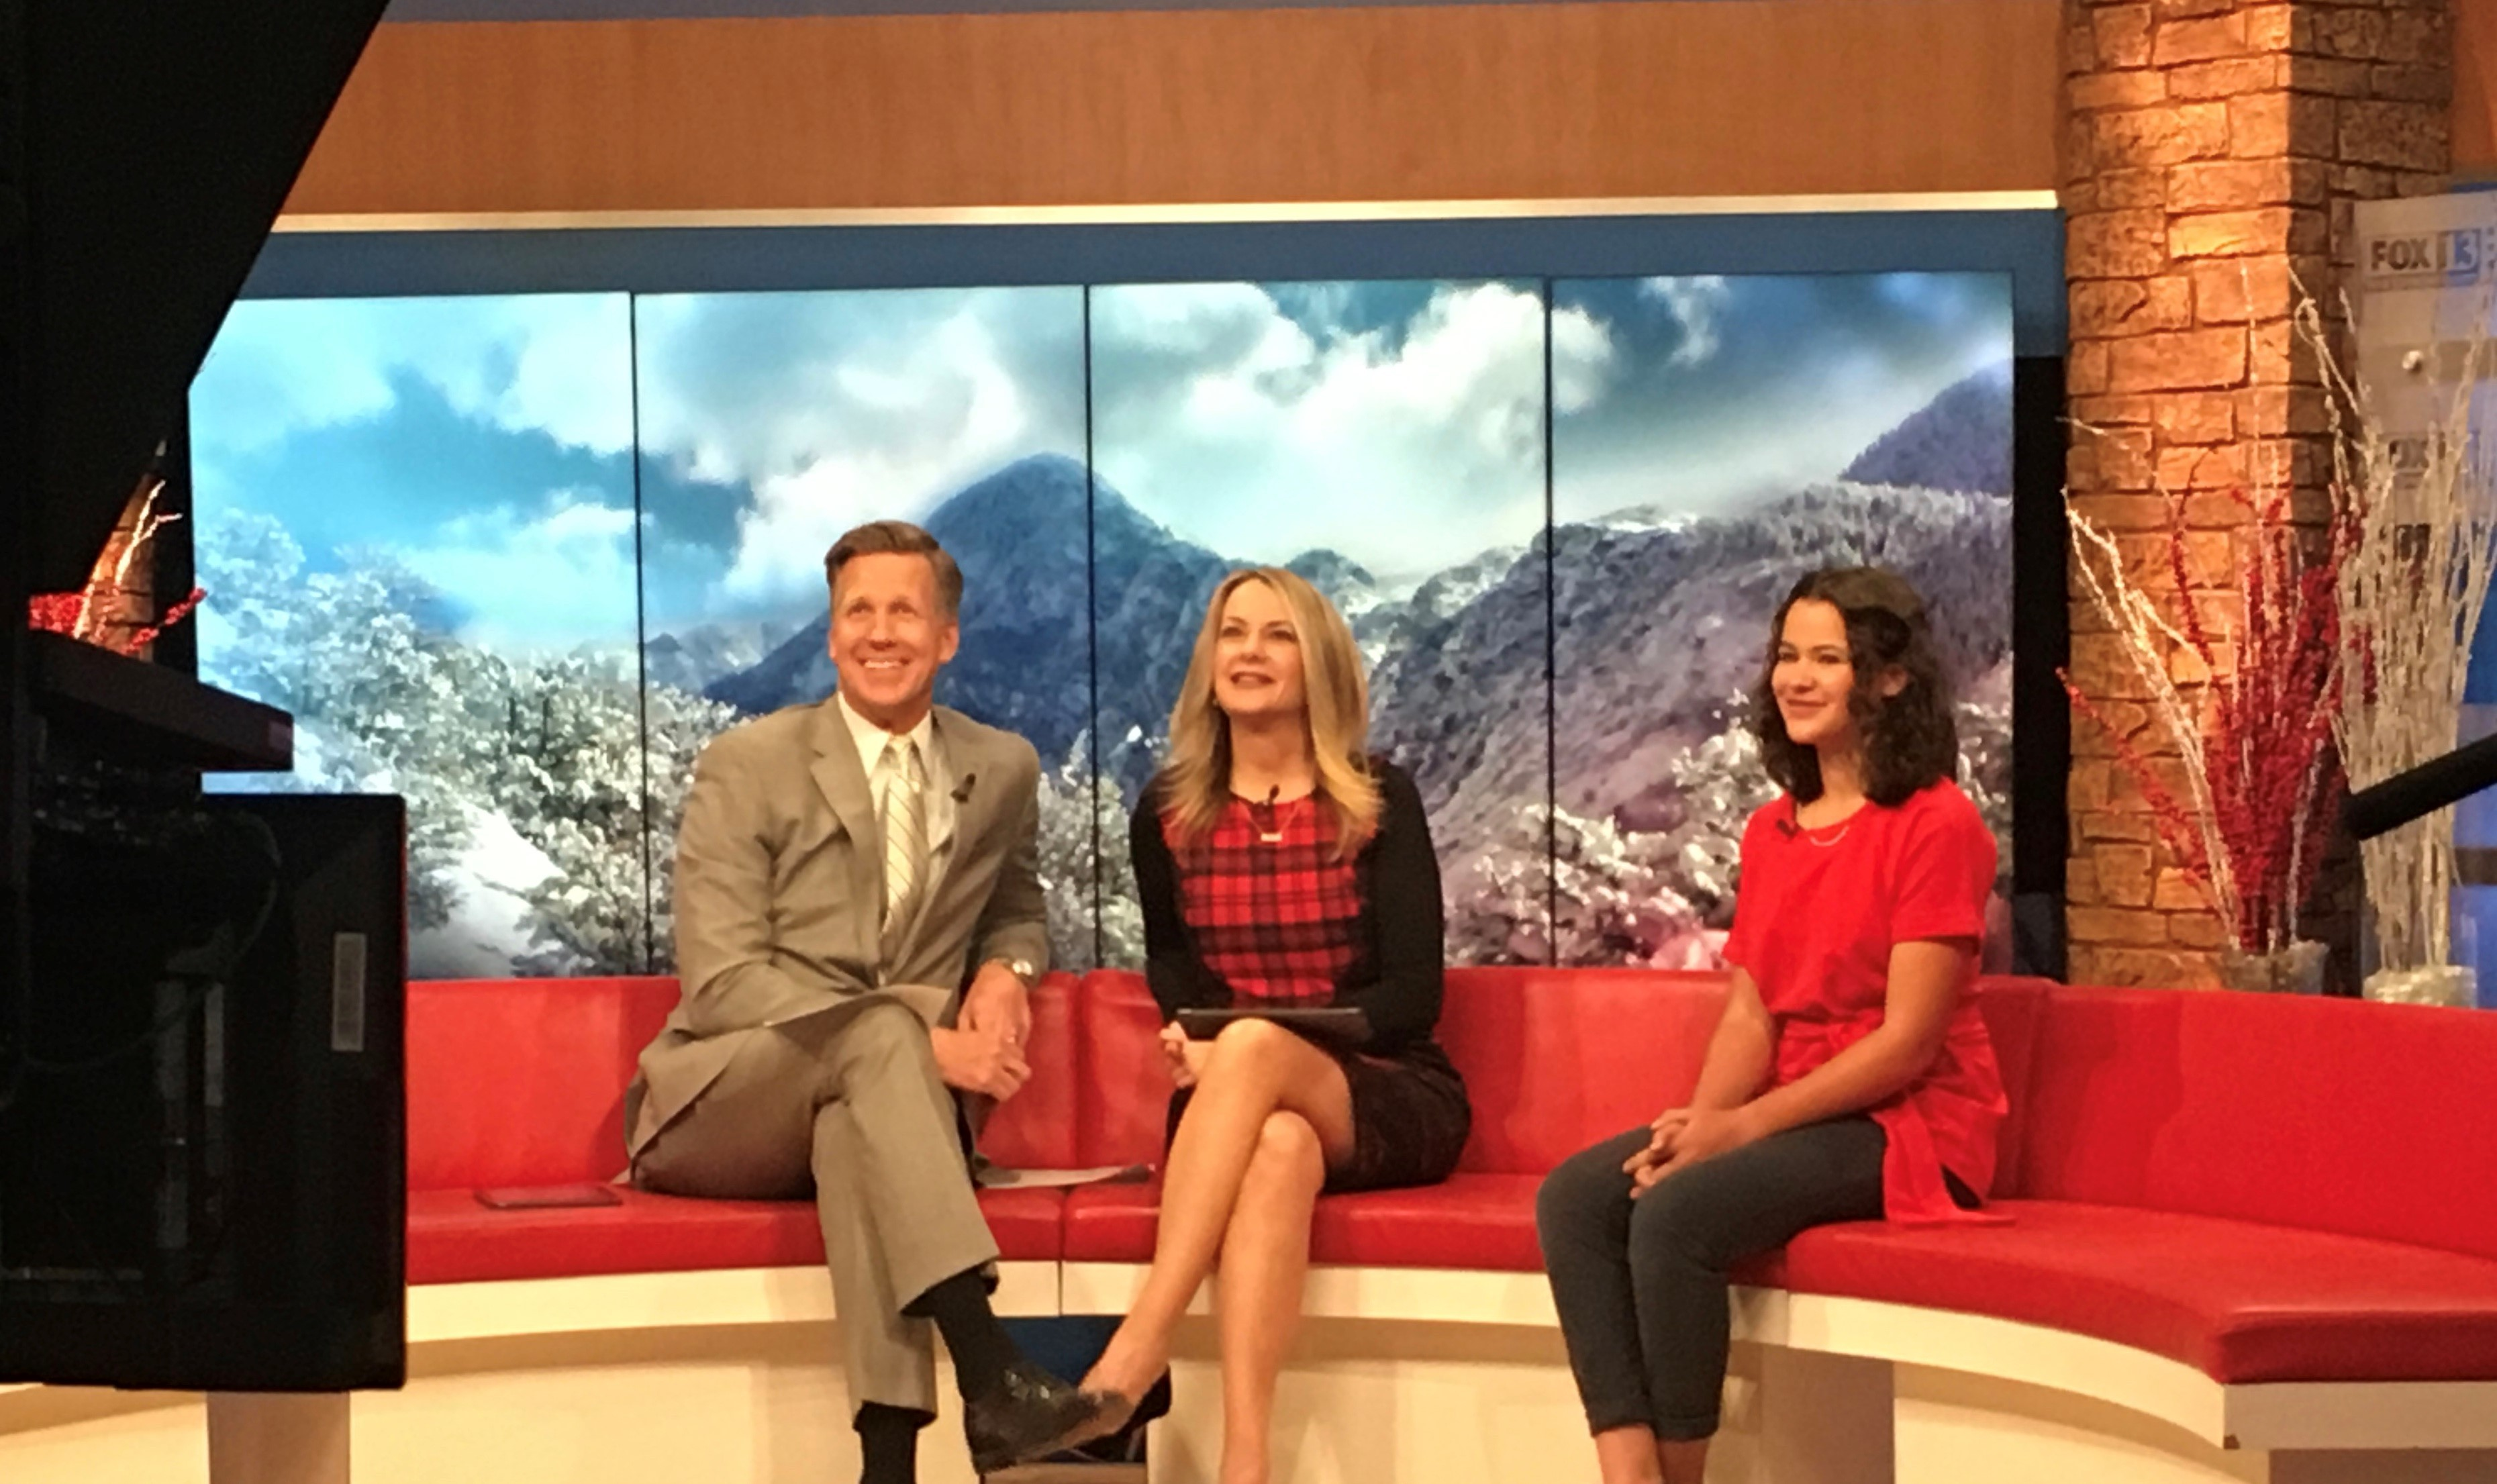 Rembrandt Communications helped teen author with television interview